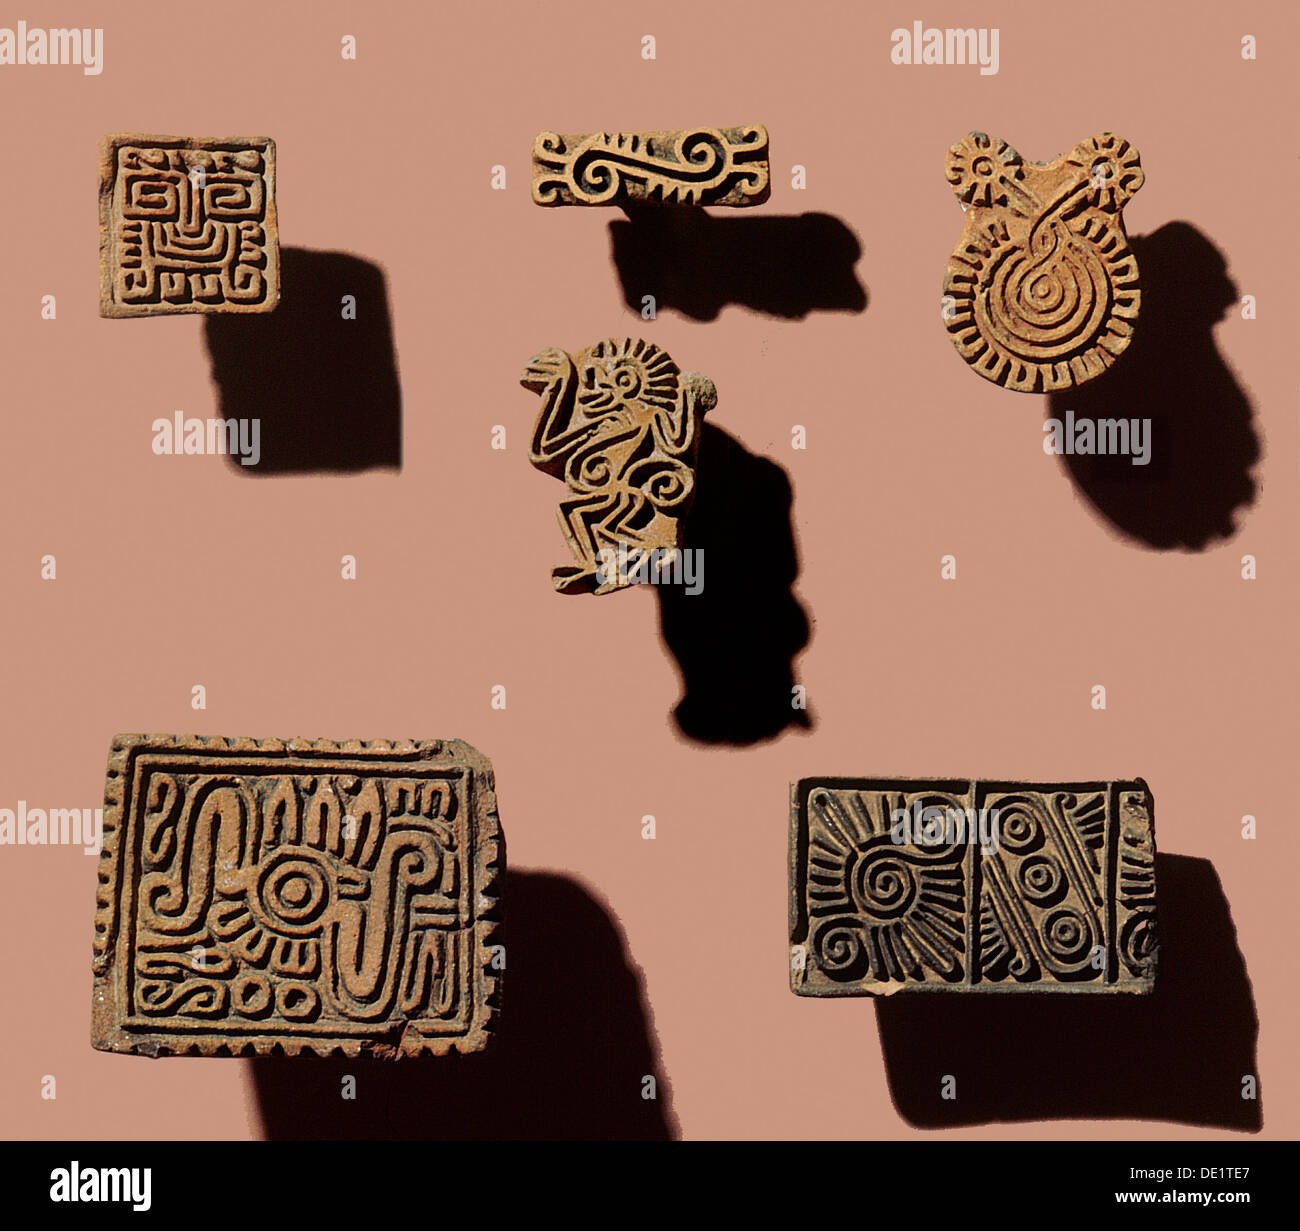 When attending festivals, the Aztecs wore face-paint and probably used small pottery stamps such as these to imprint patterns on - Stock Image